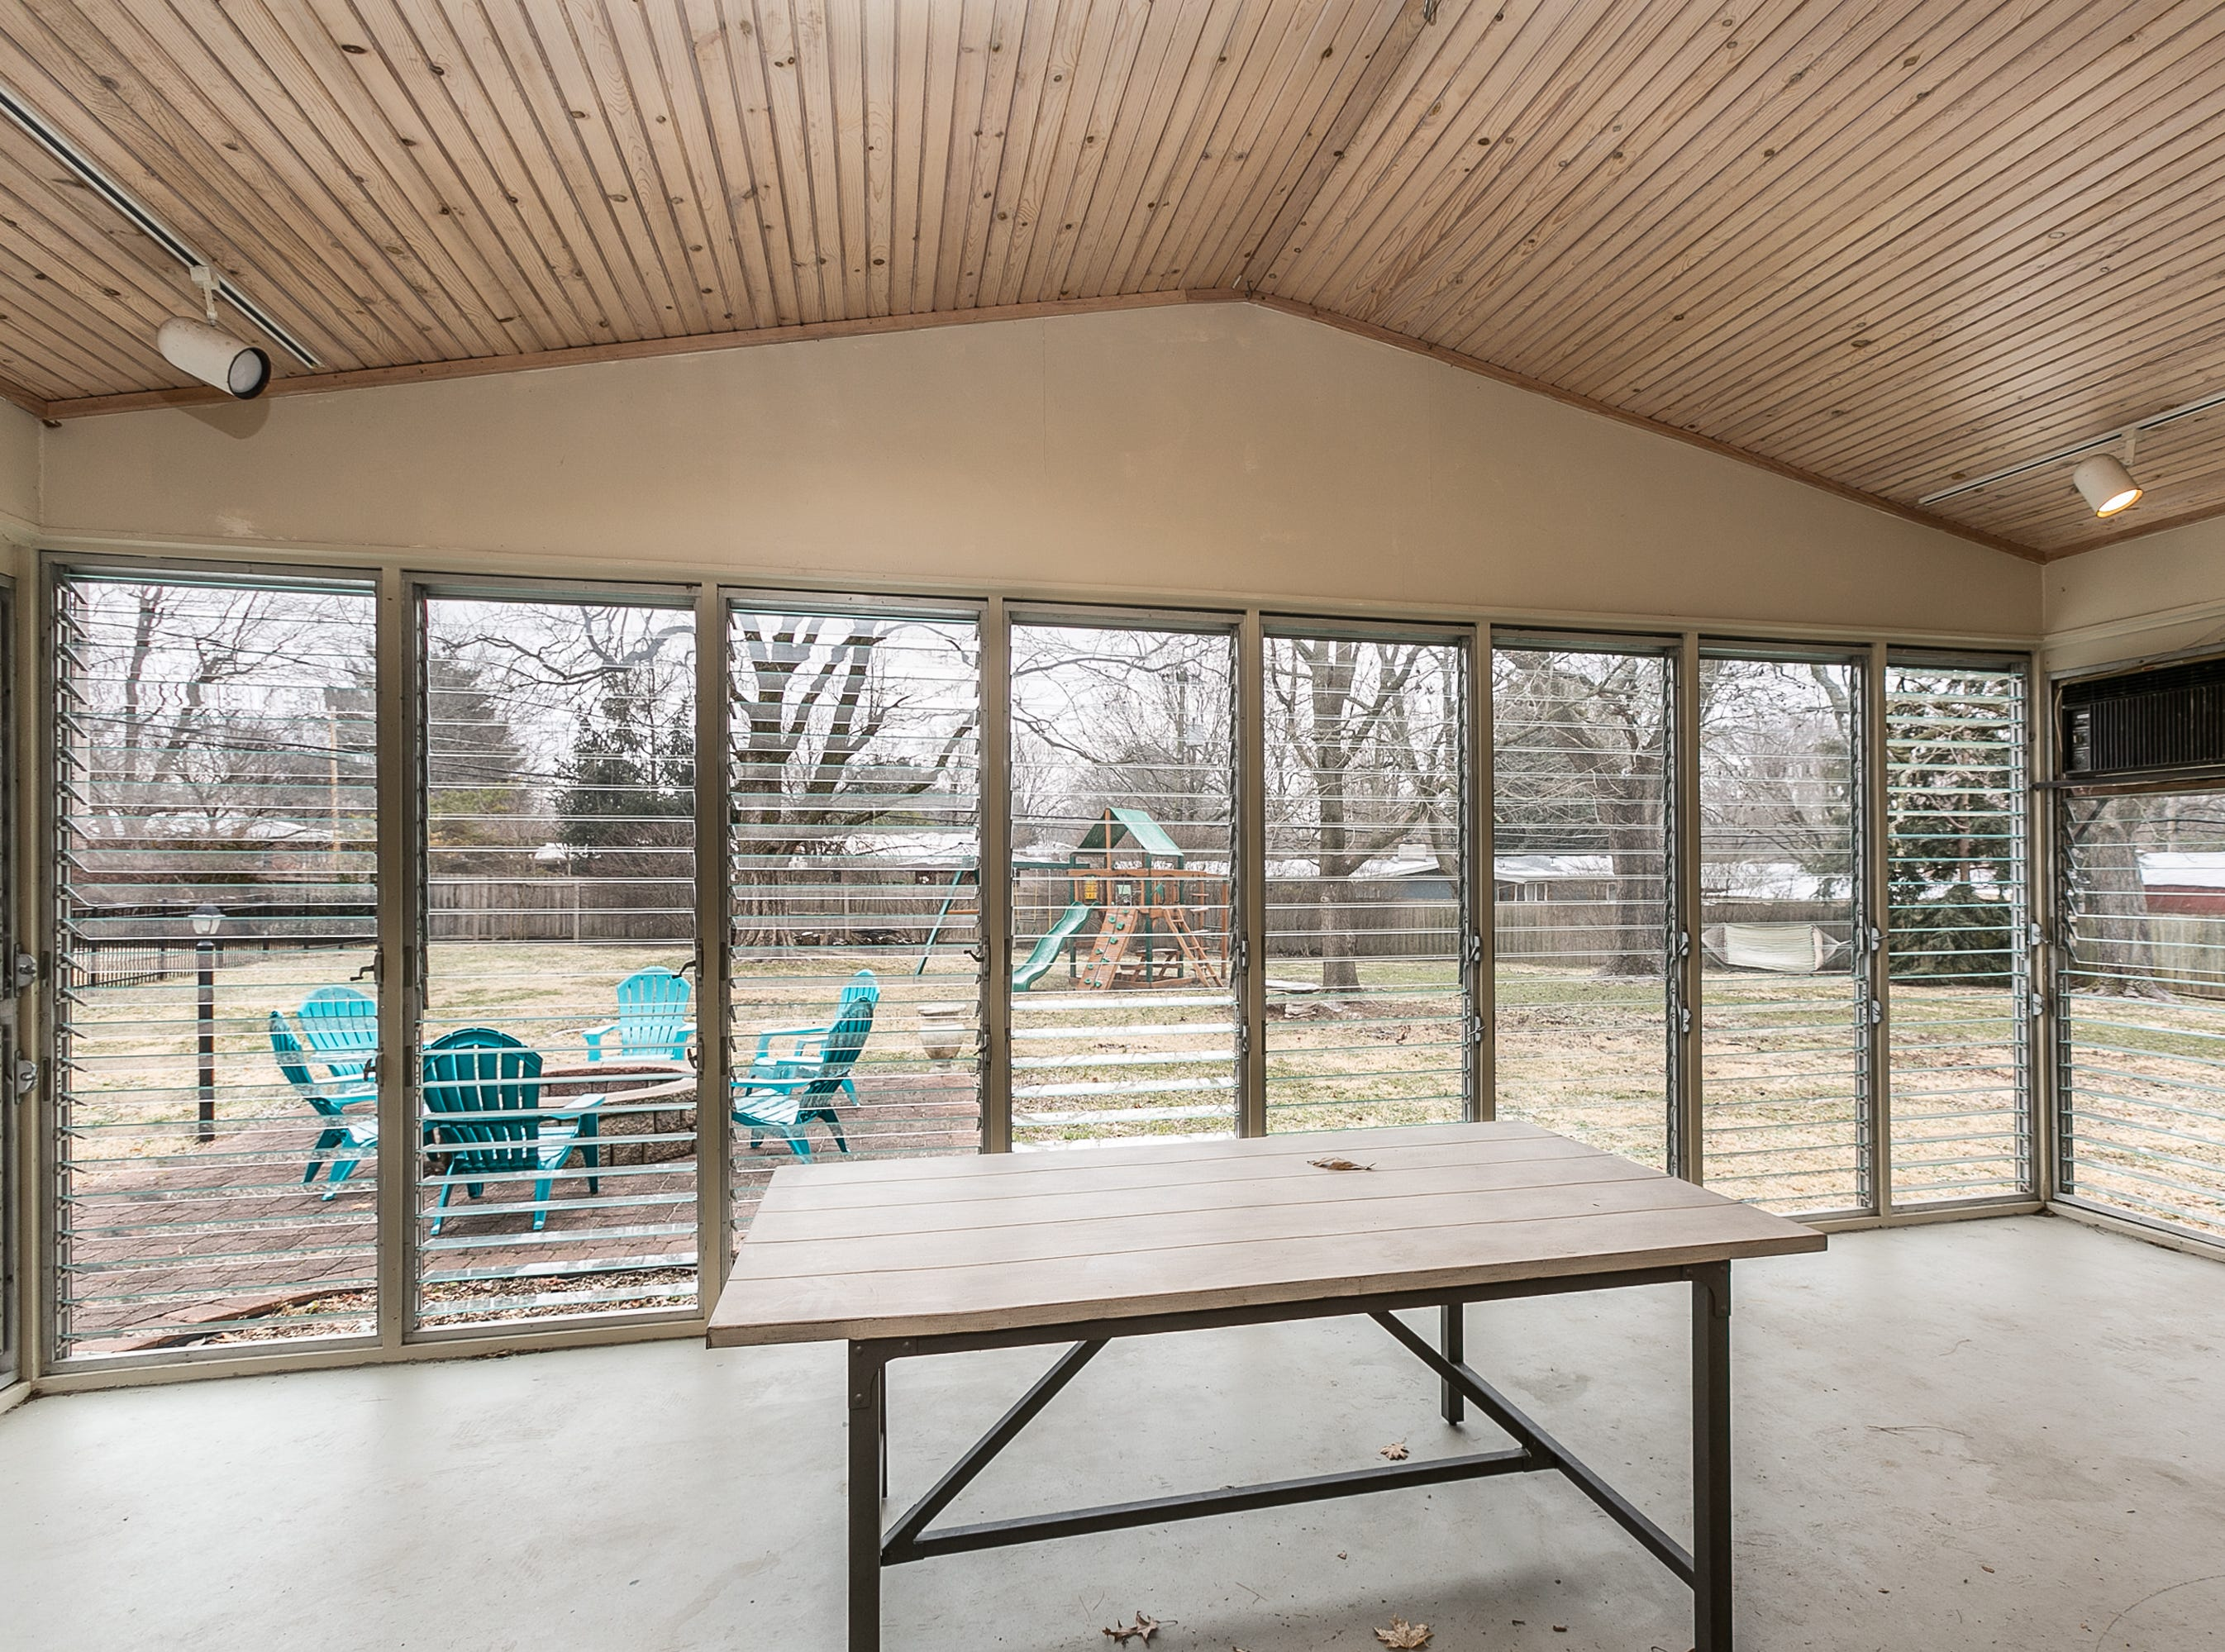 The sunroom features jalousie windows and an excellent view of the backyard and (left) the pool.